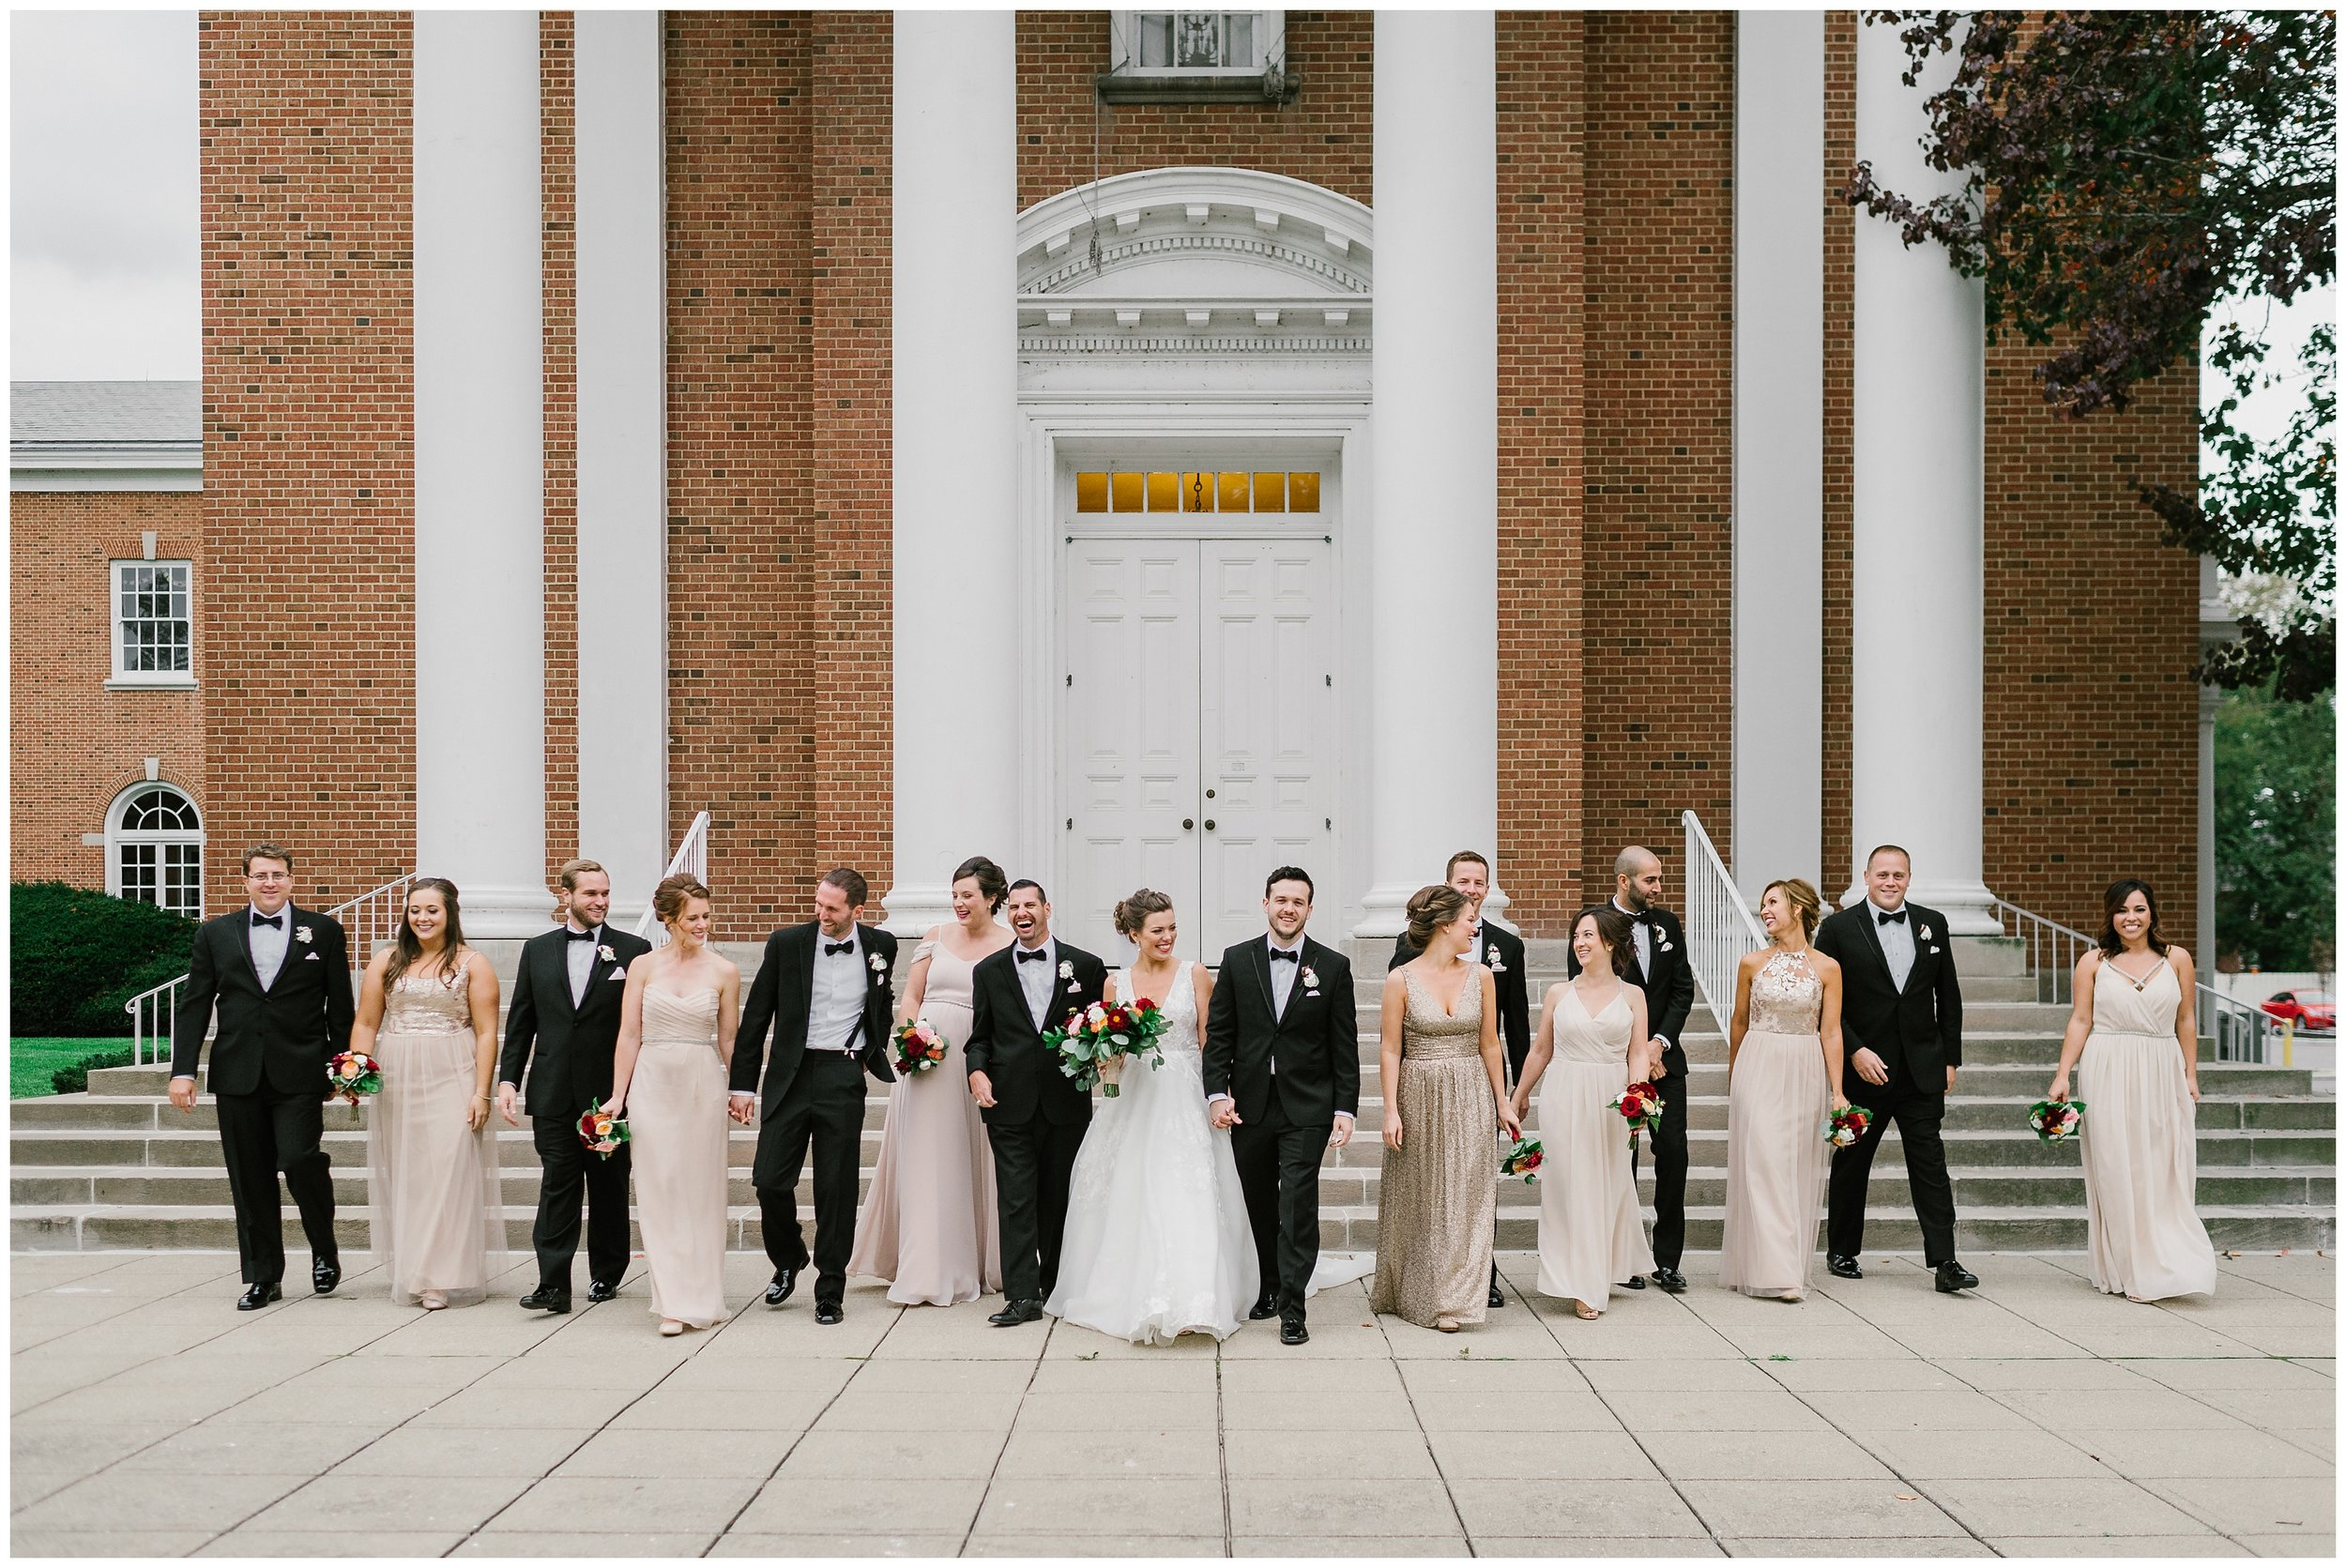 Rebecca_Shehorn_Photography_Indianapolis_Wedding_Photographer_7763.jpg